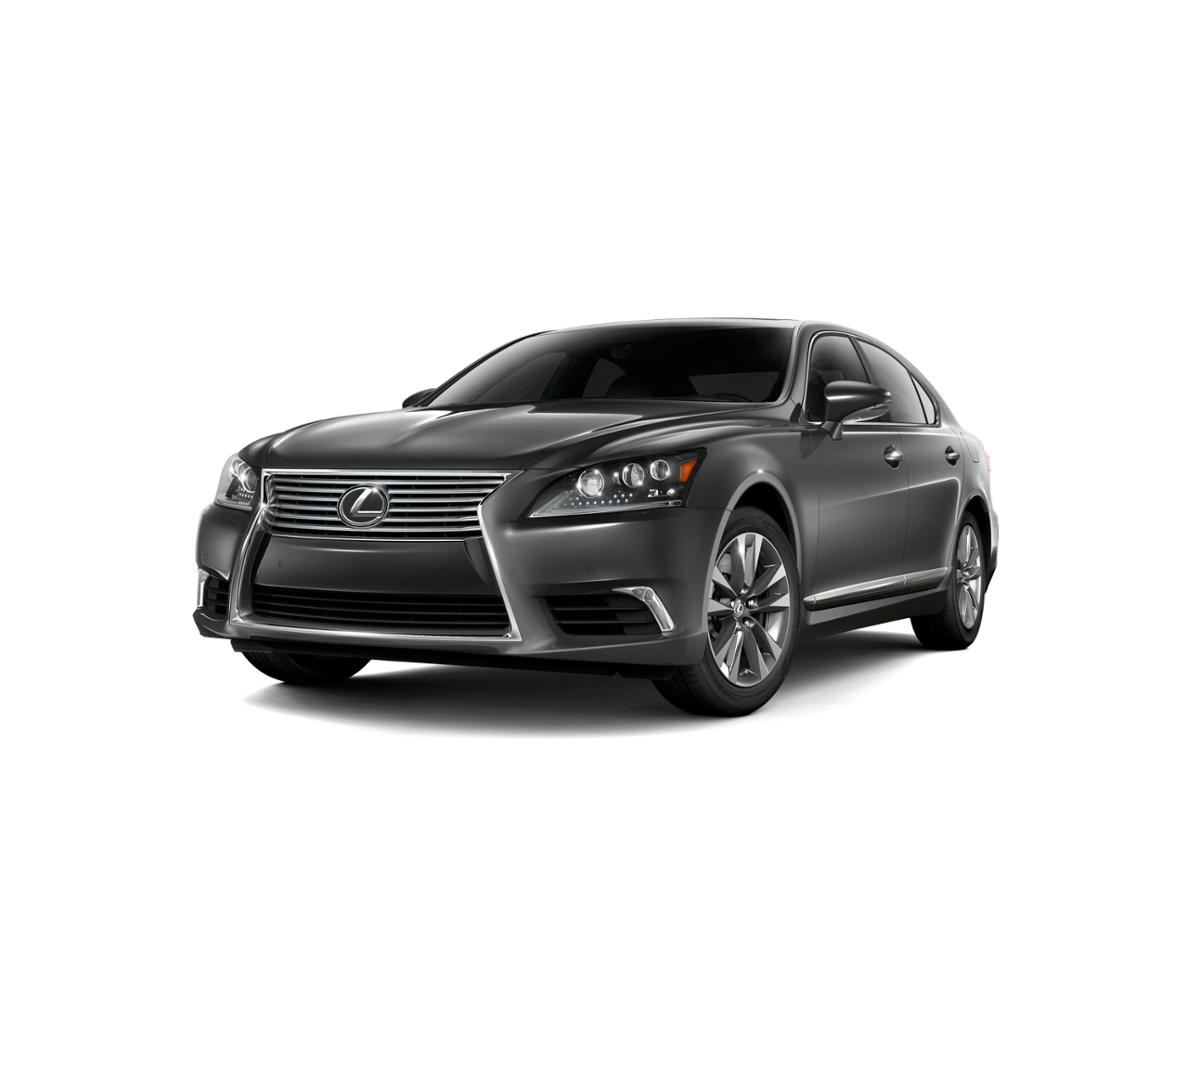 2017 Lexus LS 460 Vehicle Photo in Charlotte, NC 28212